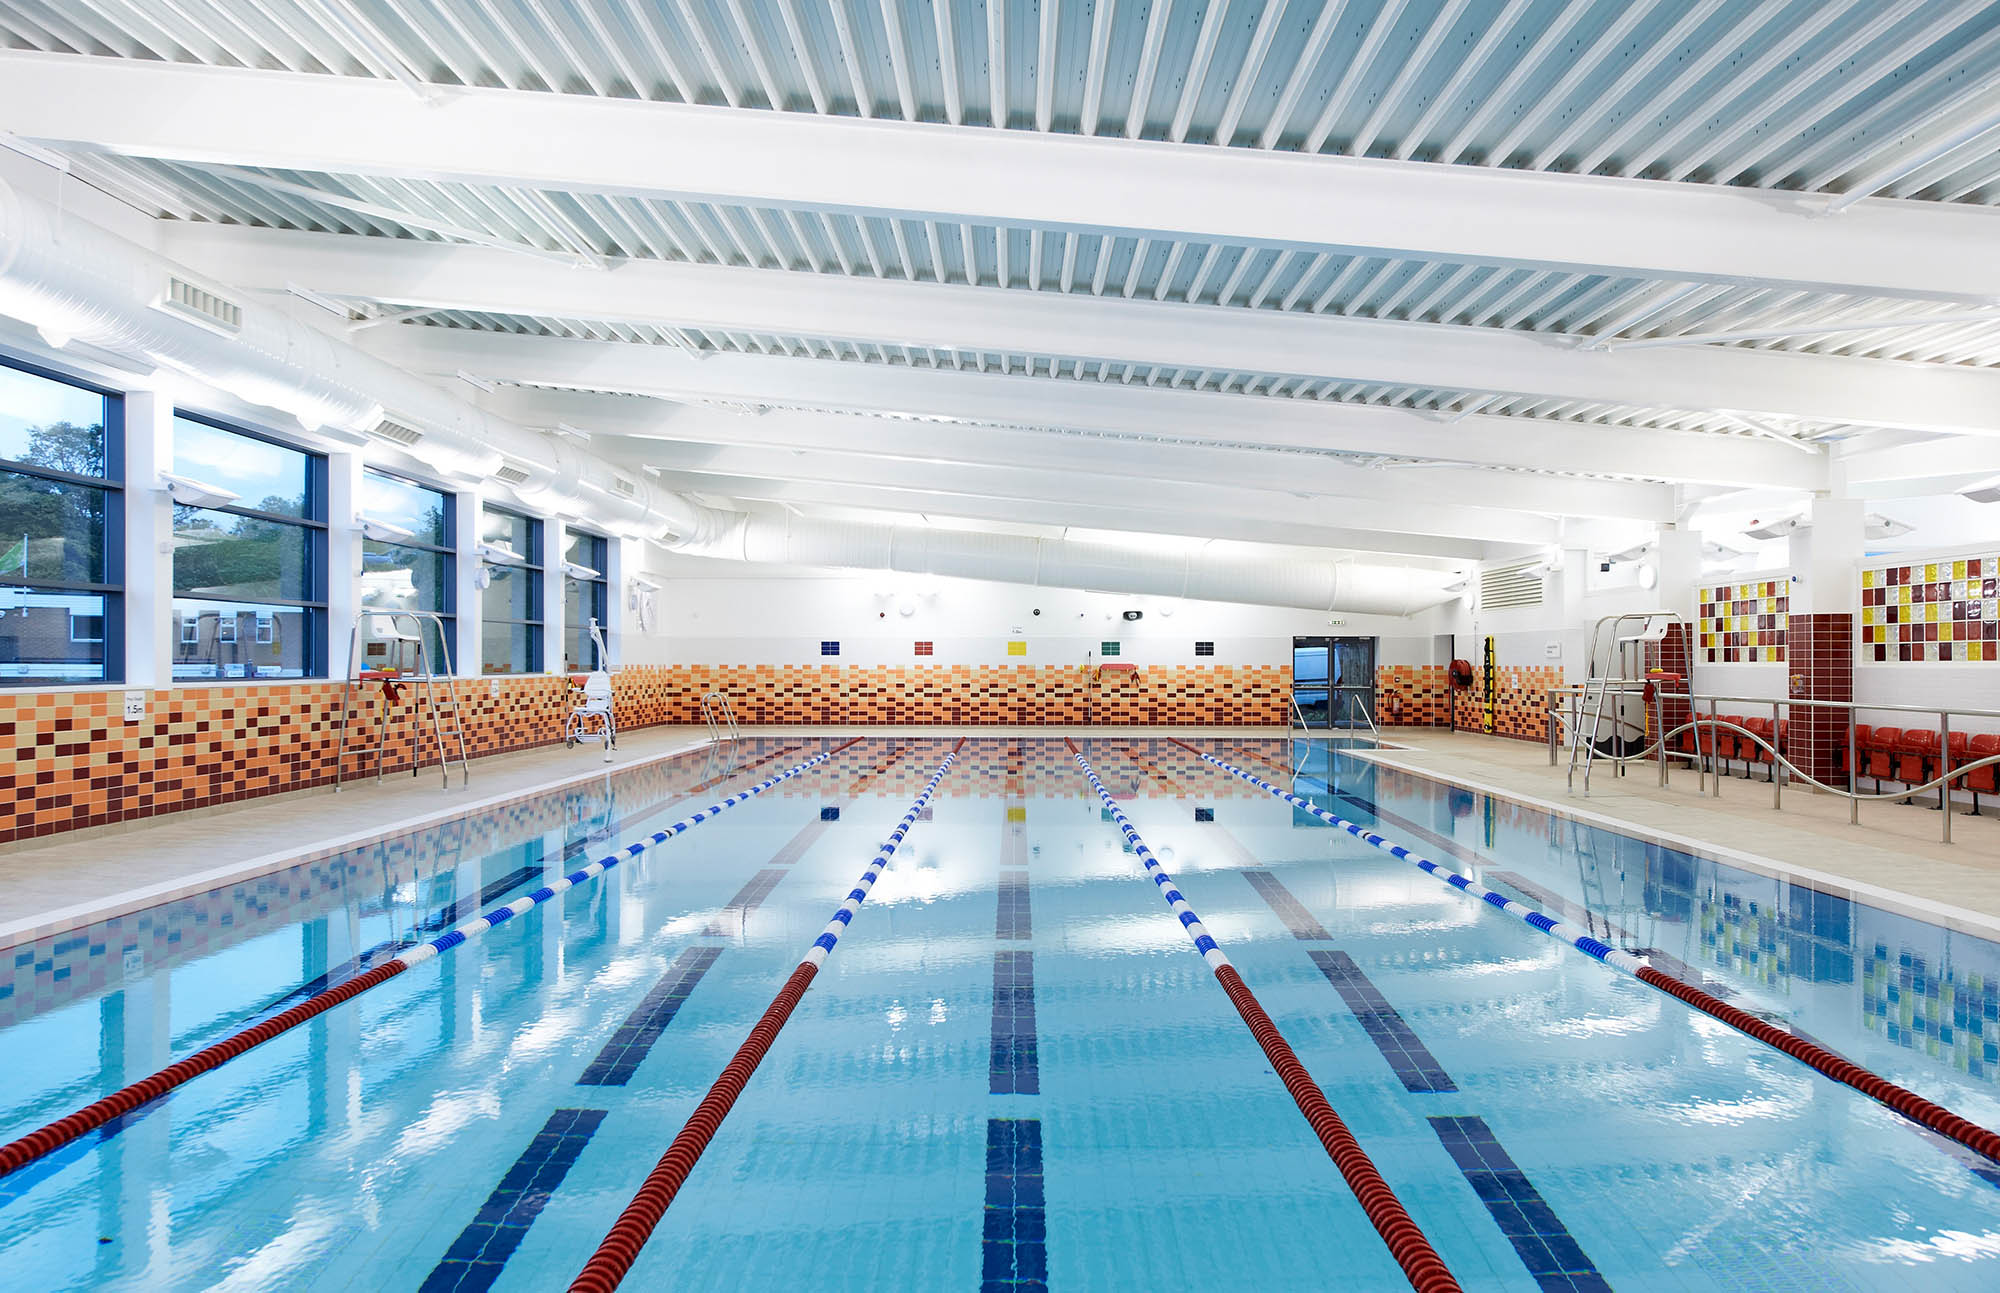 Sowerby Bridge Swimming Pool and Leisure Centre